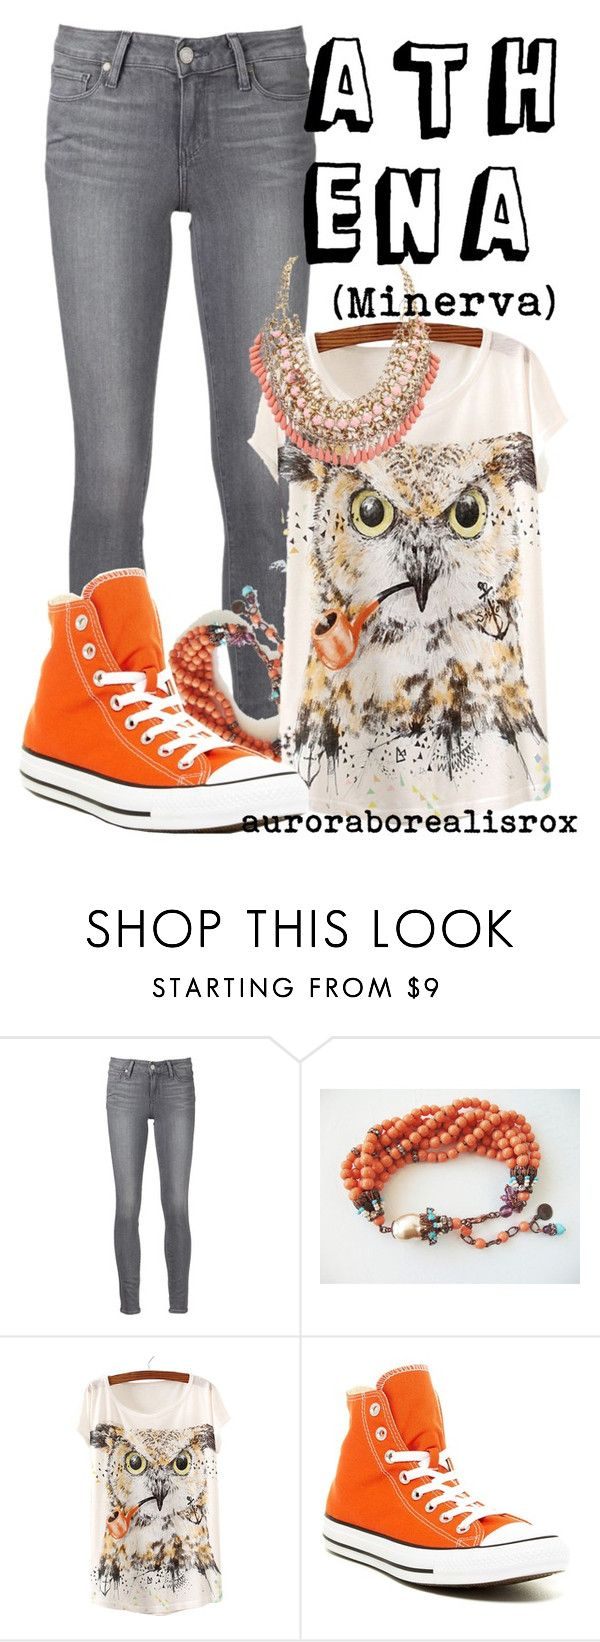 """Athena // Minerva"" by auroraborealisrox ❤ liked on Polyvore featuring Paige Denim, Converse, Retrò and mythologyinspired"